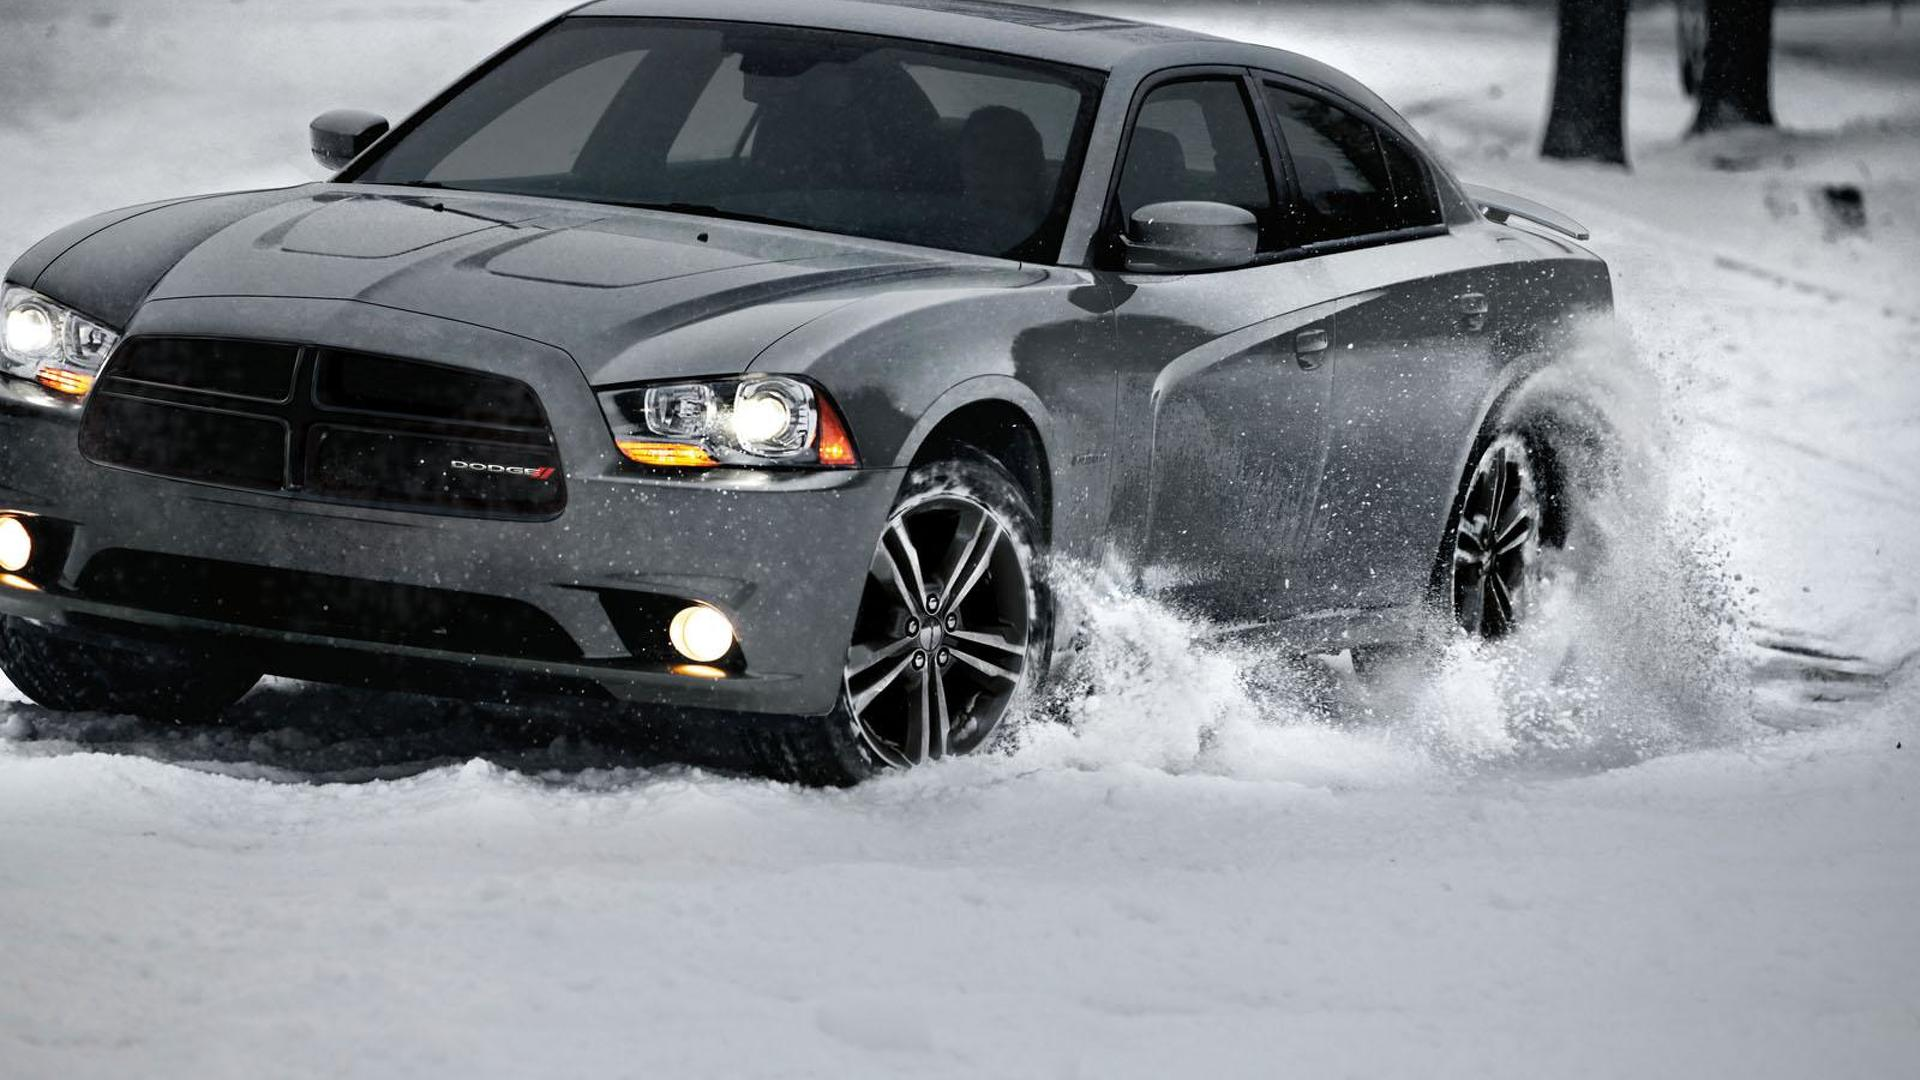 2013 Dodge Charger AWD Sport announced